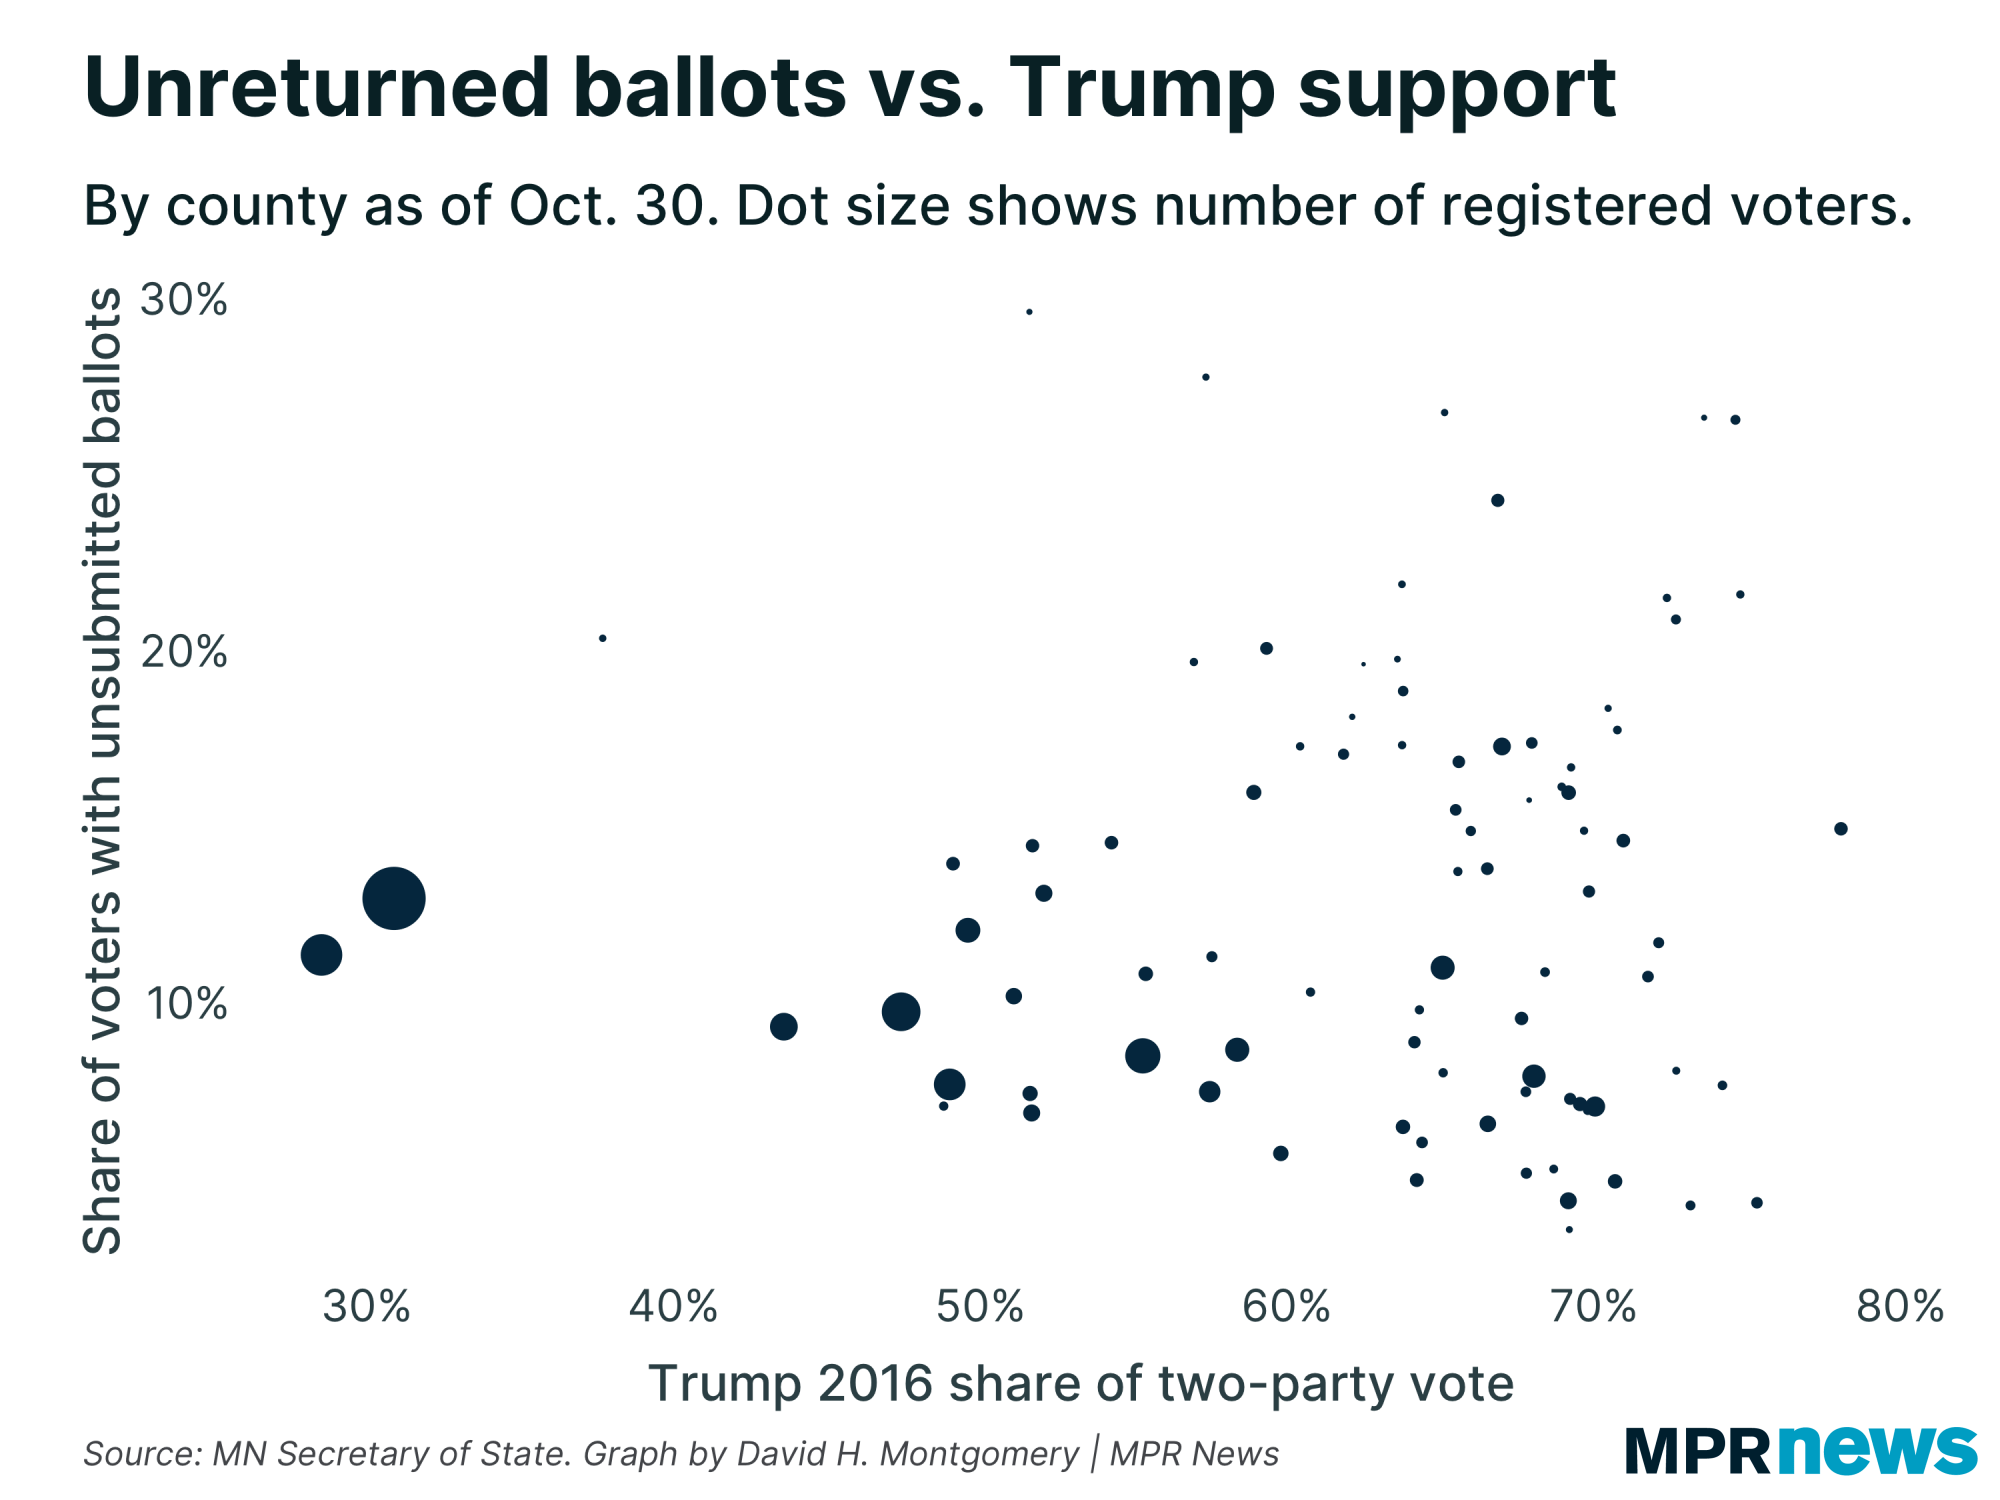 A graph of unreturned 2020 early ballots vs. 2016 Trump support